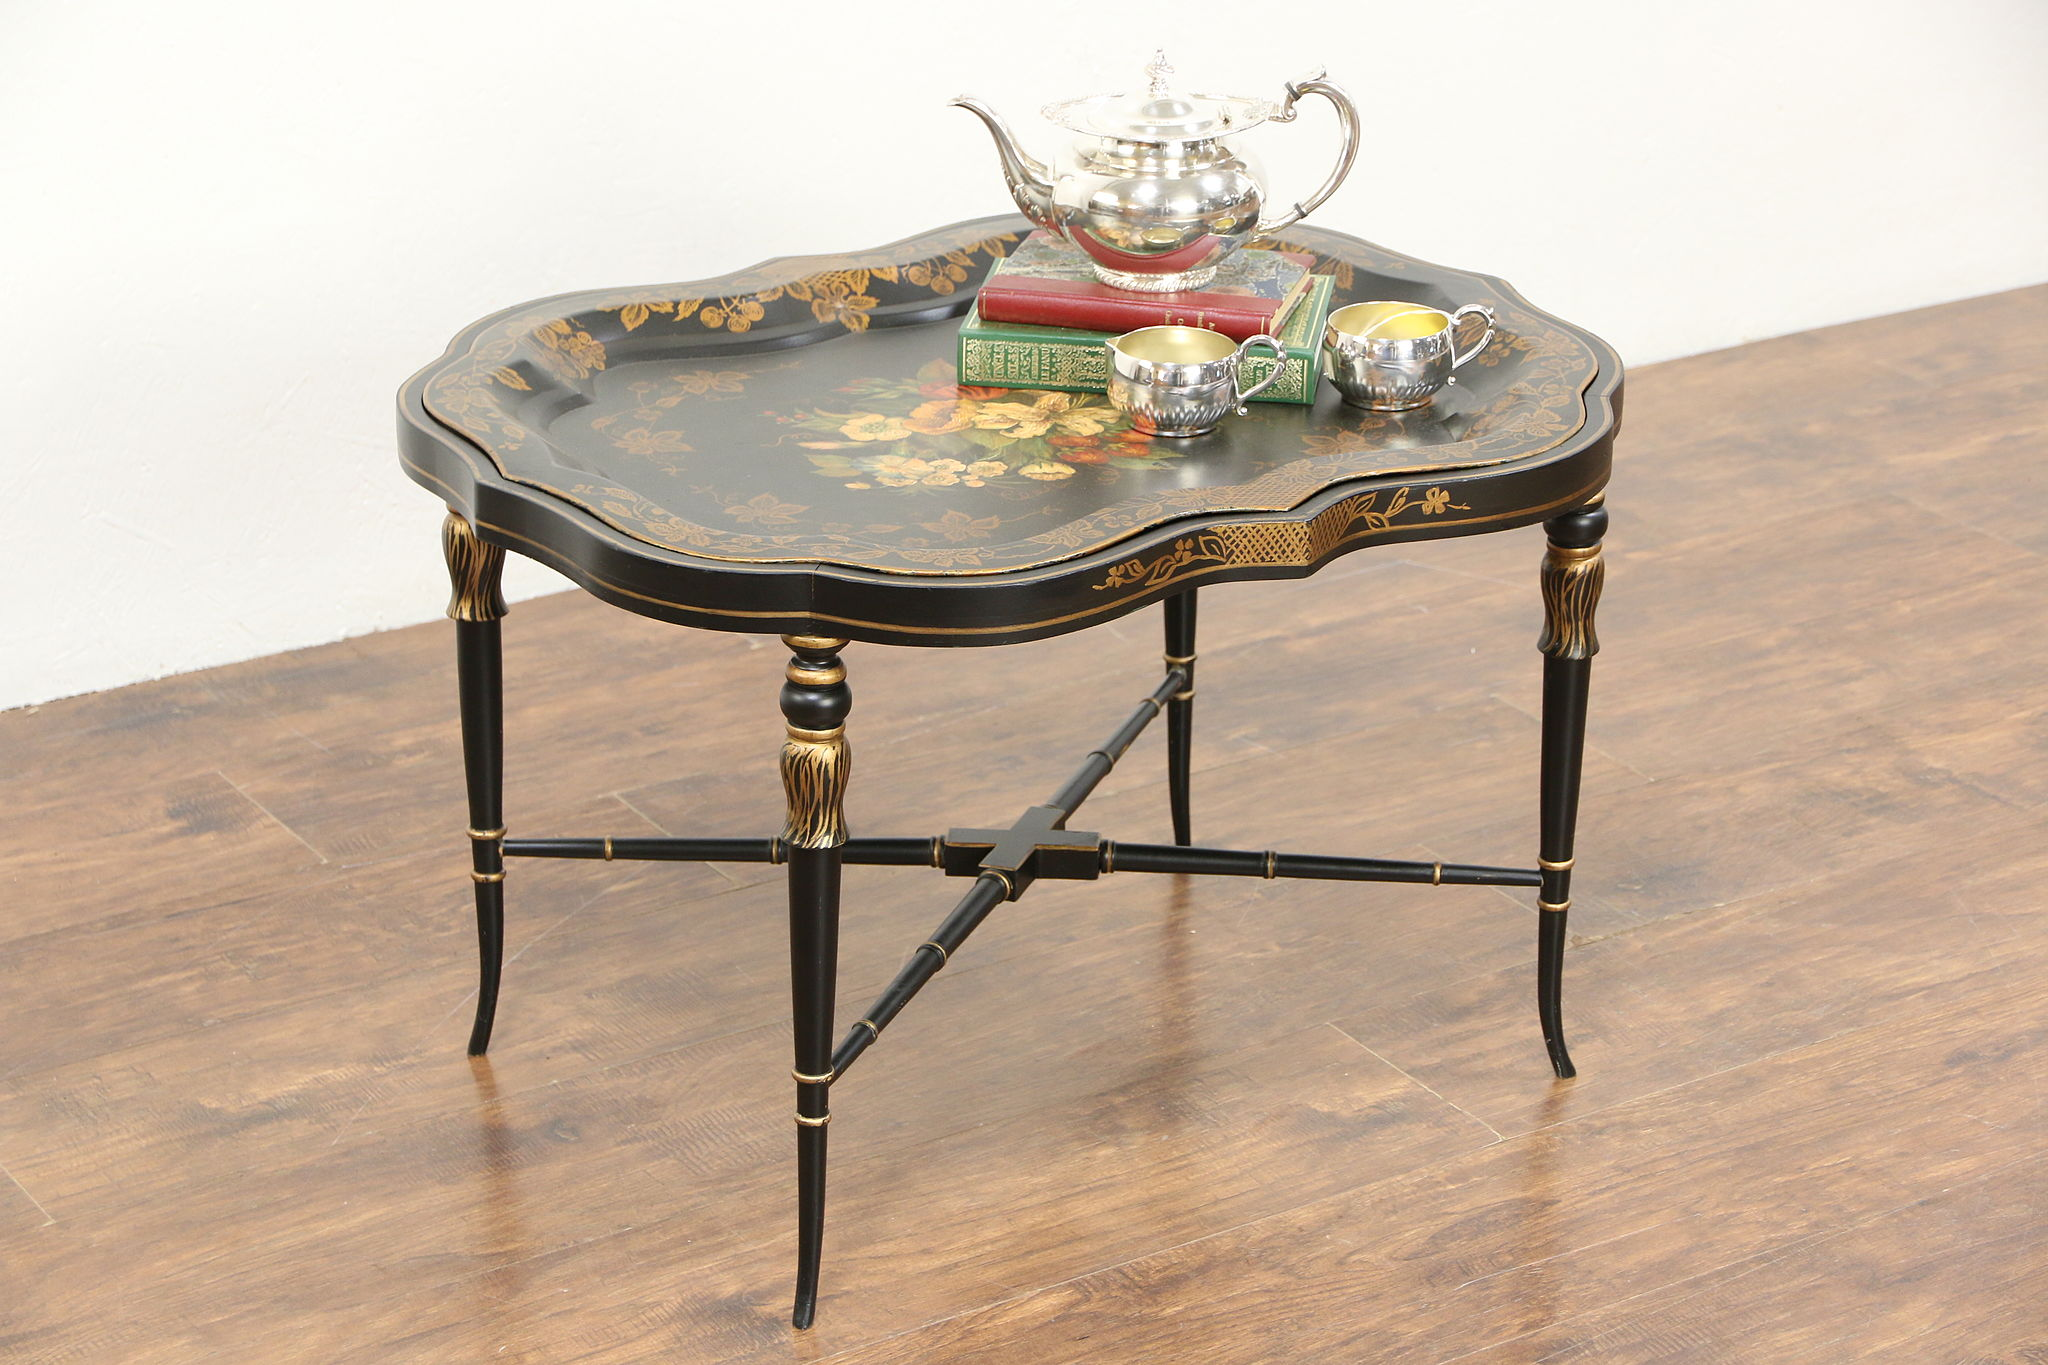 Toleware Hand Painted 1930 s Vintage Tin Tray & Stand Coffee Table